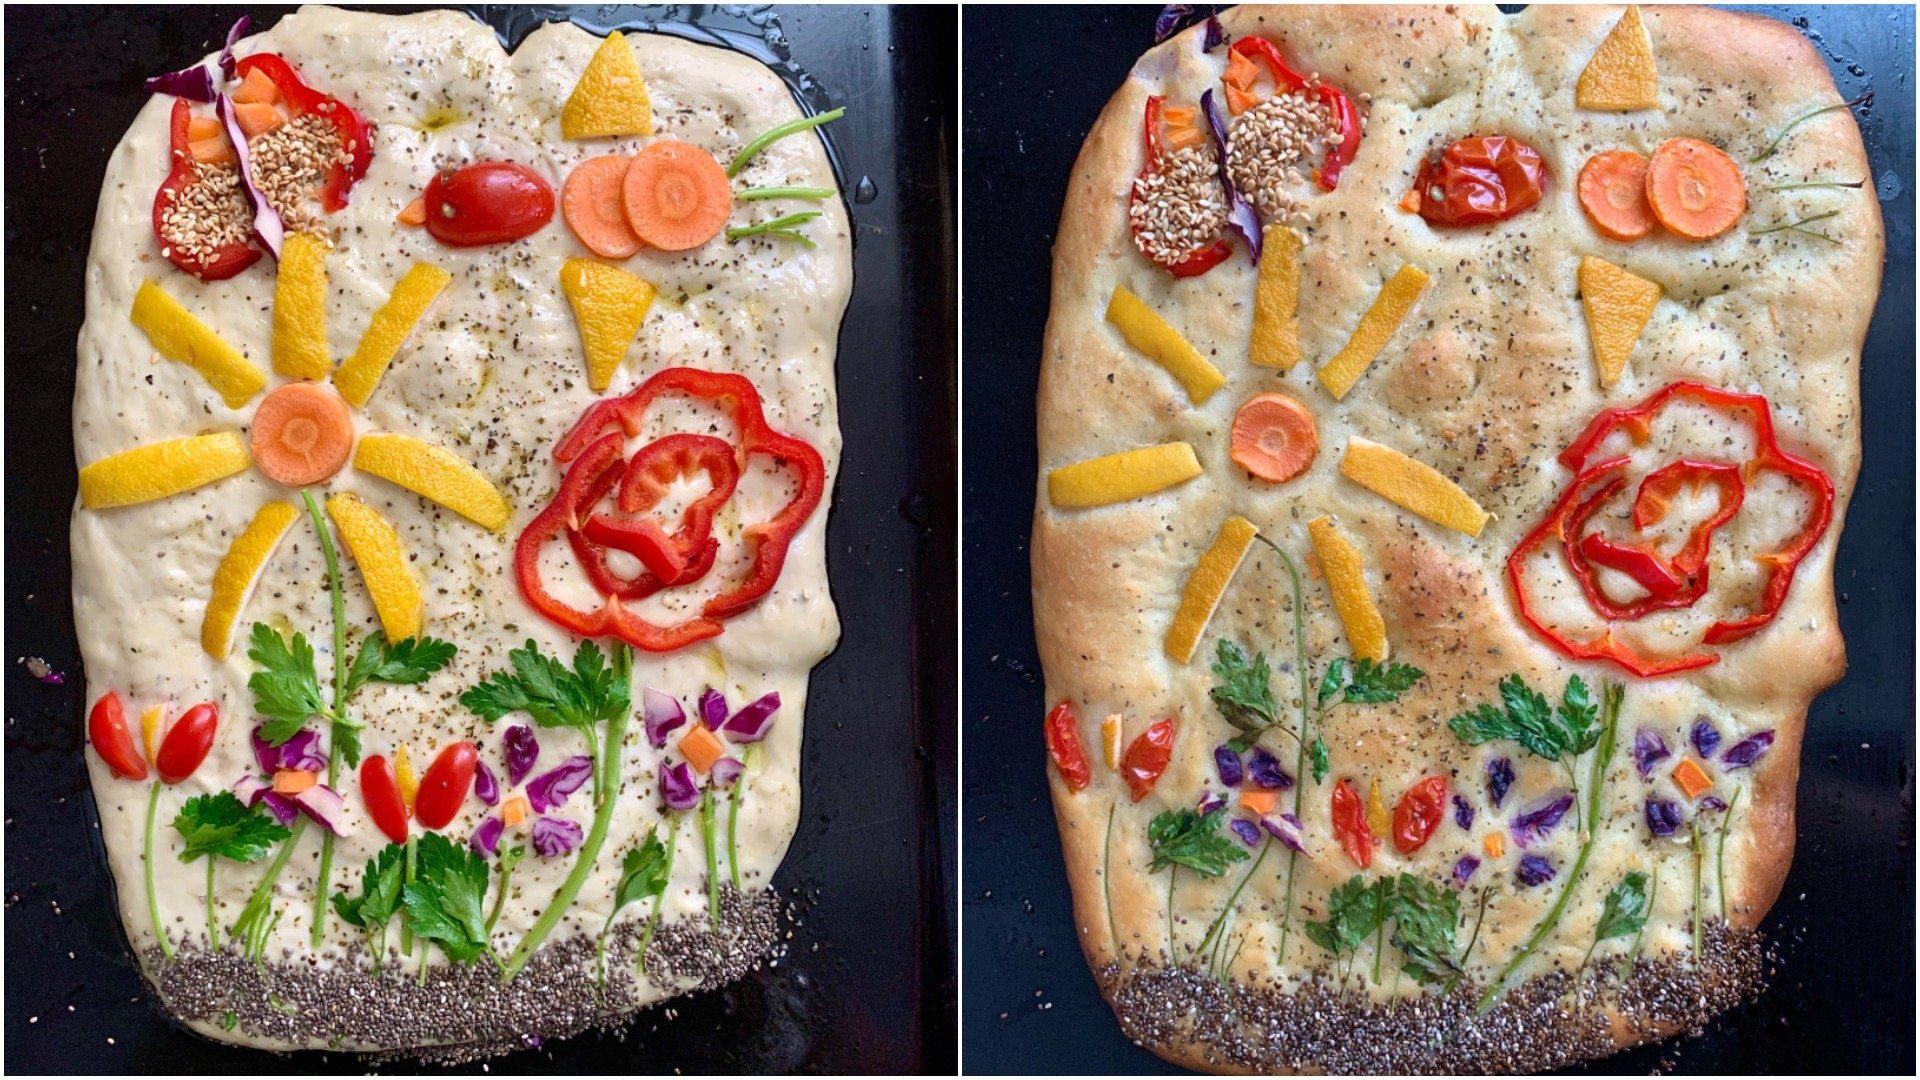 Before and after, focaccia garden No. 1. (Photo by Mindy Yartaşı)